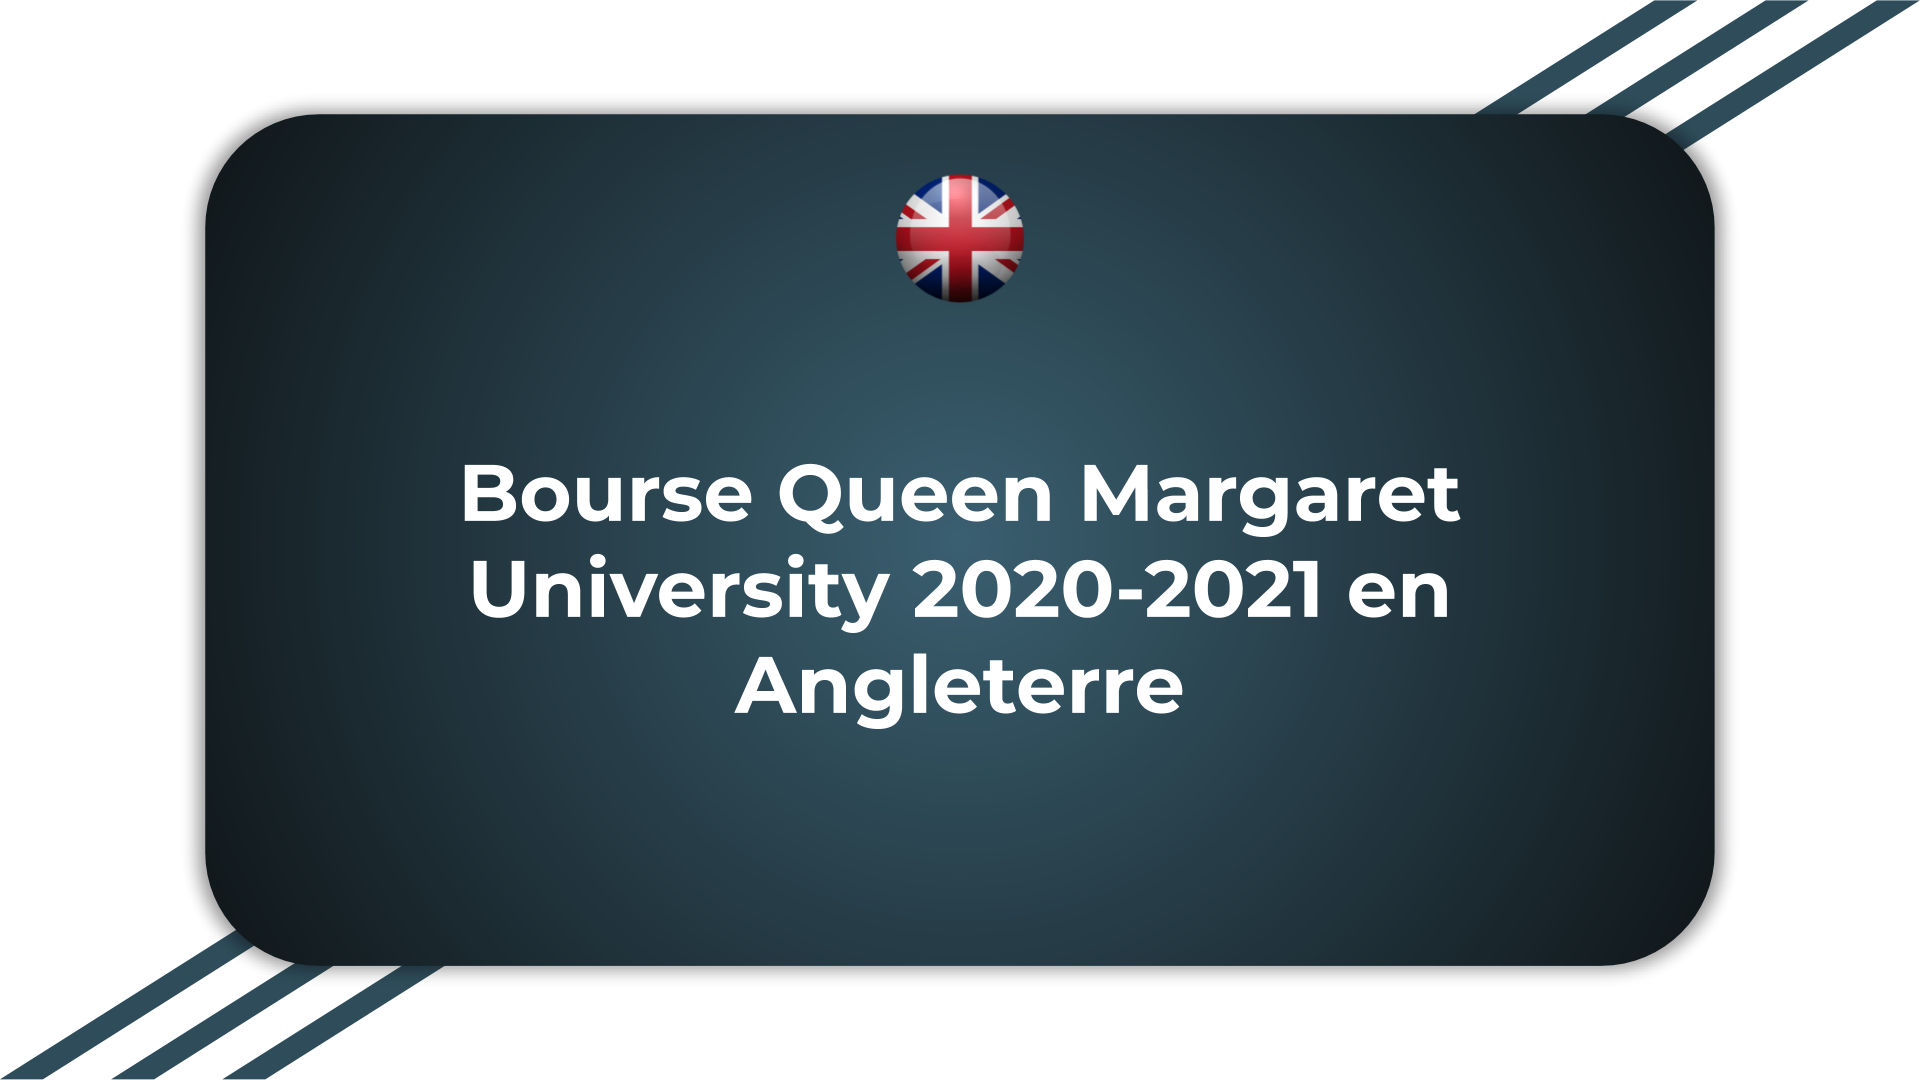 Bourse Queen Margaret University